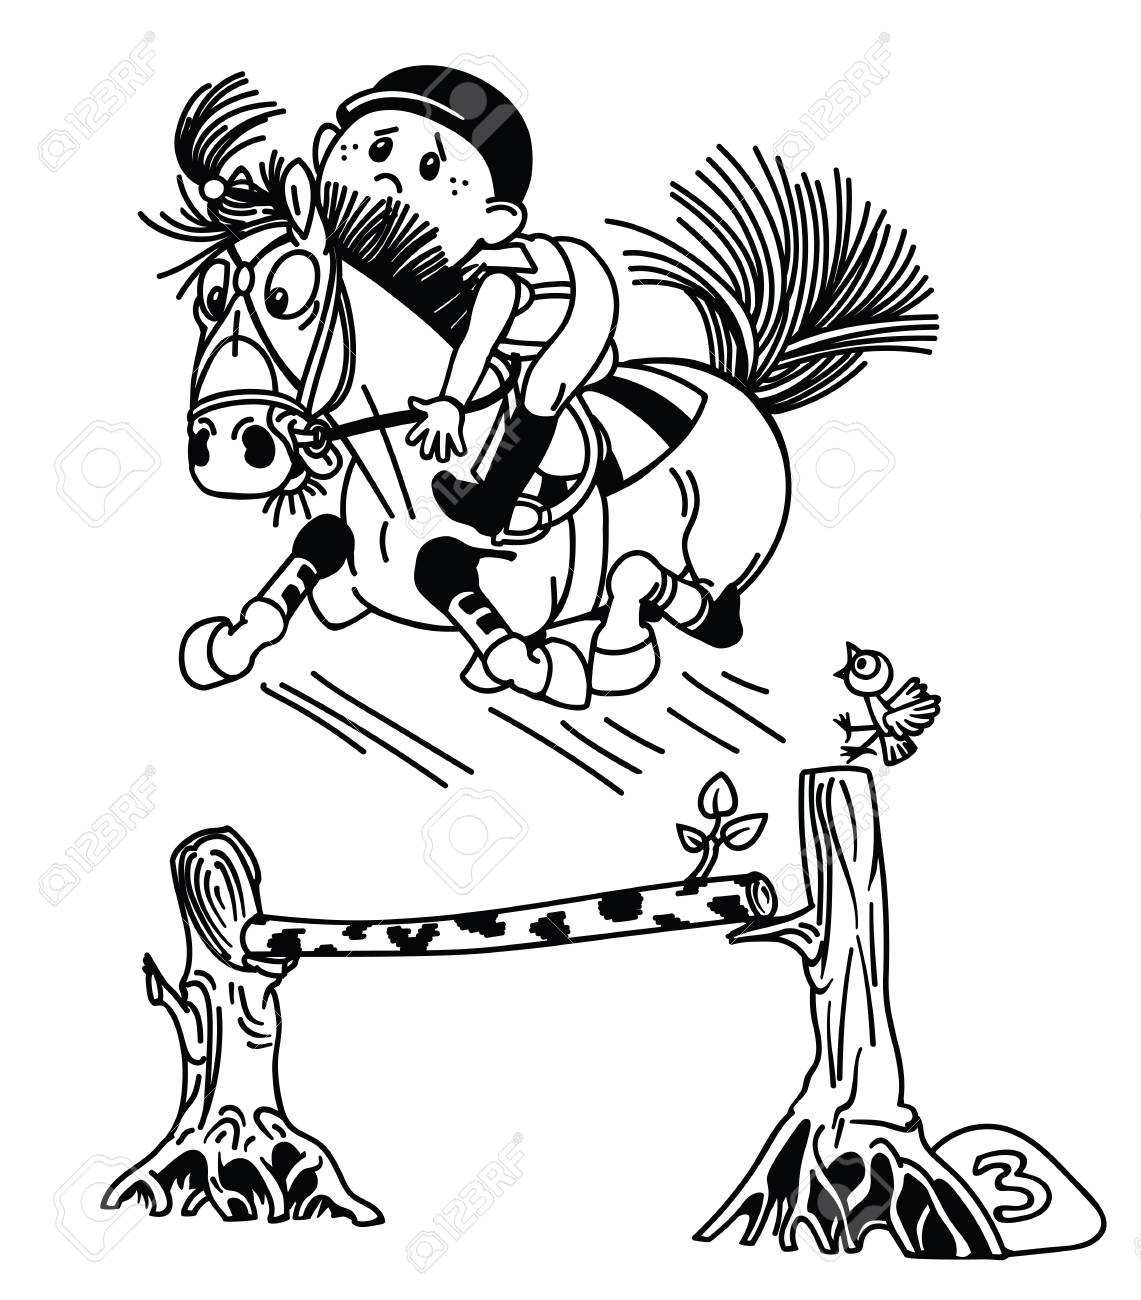 Cartoon Boy Training His Pony Horse Jumping Over Obstacle Funny Royalty Free Cliparts Vectors And Stock Illustration Image 116481020